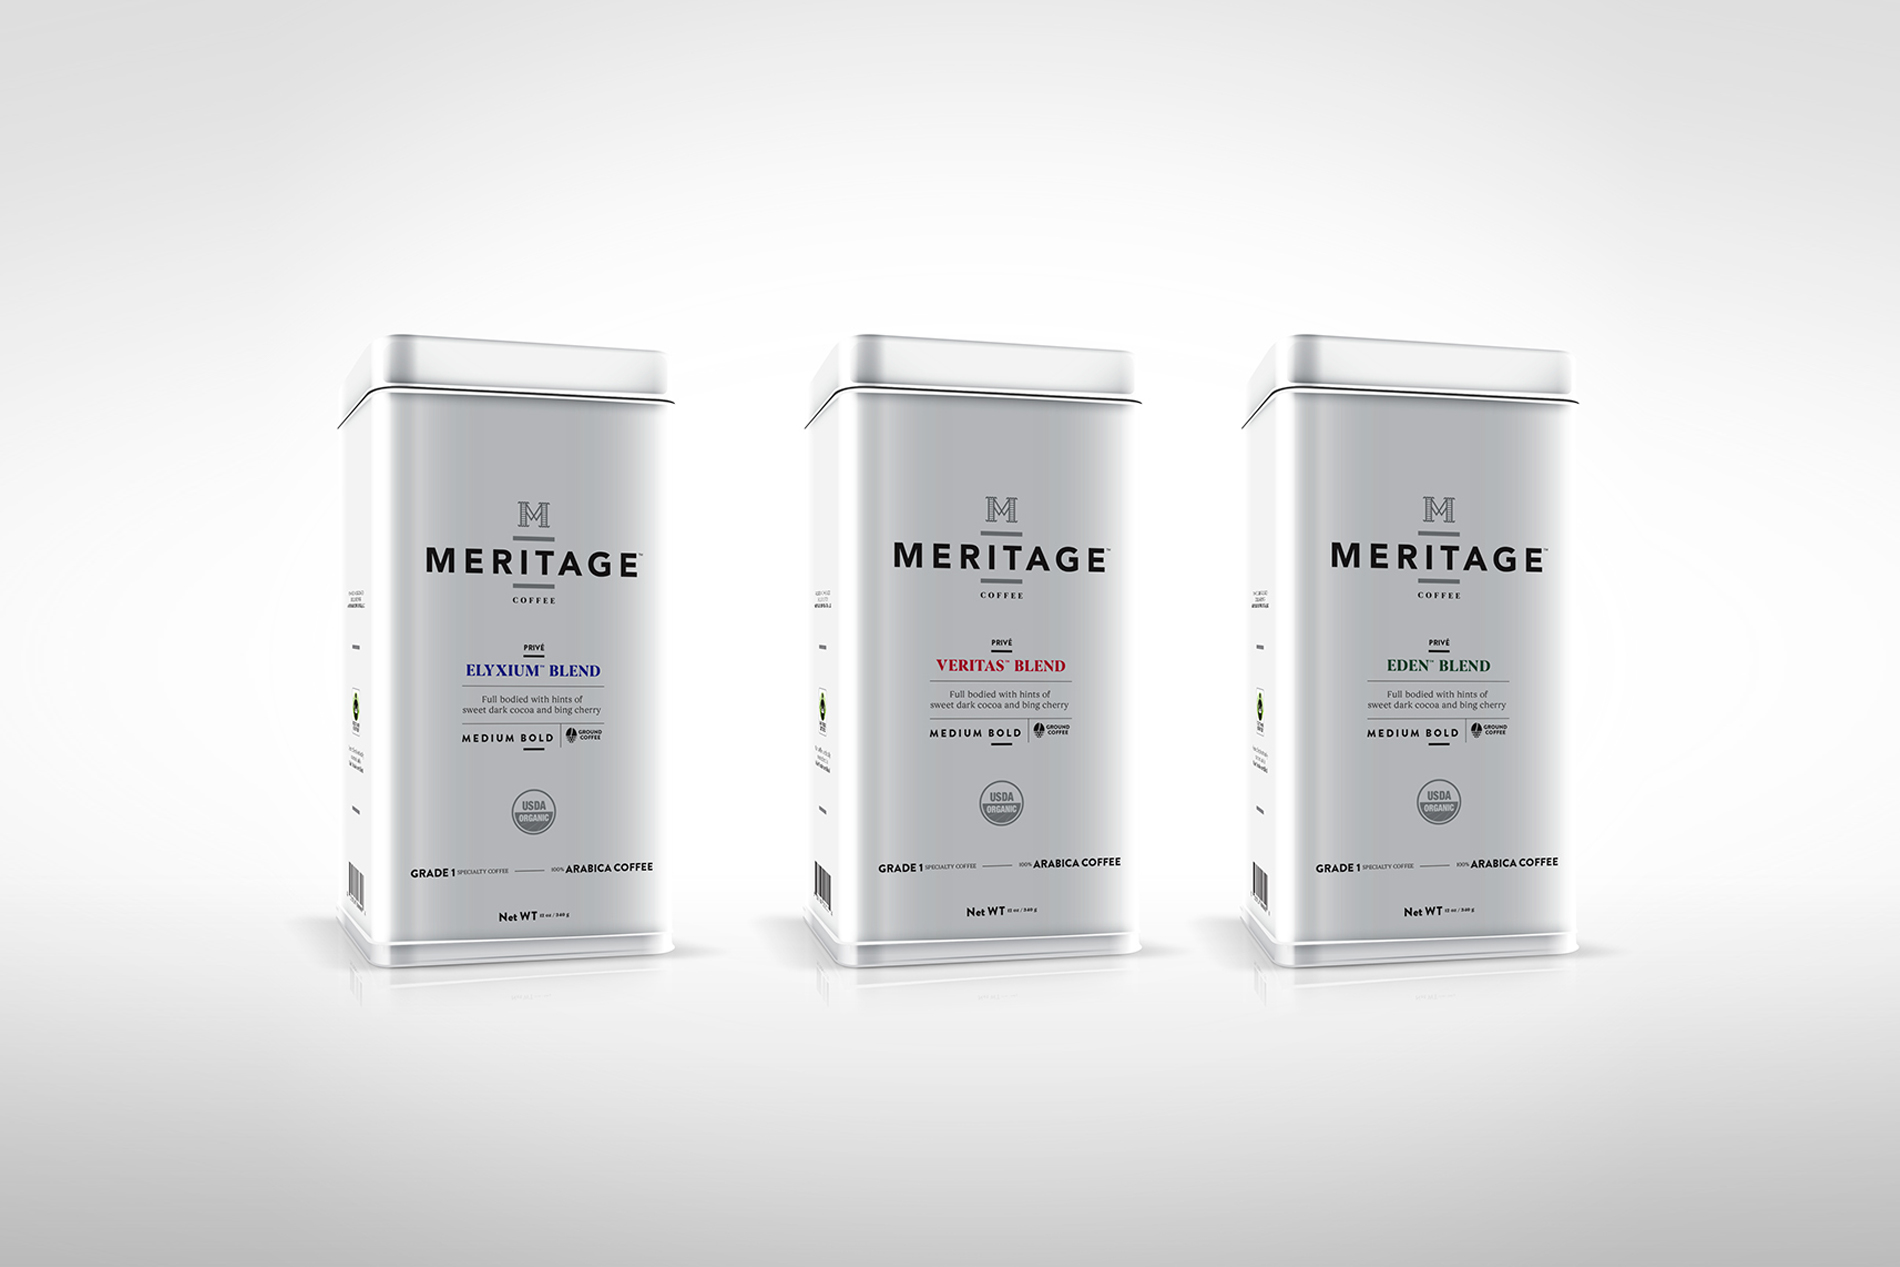 Dedica Group Meritage Coffee Packaging Featured On The Dieline.